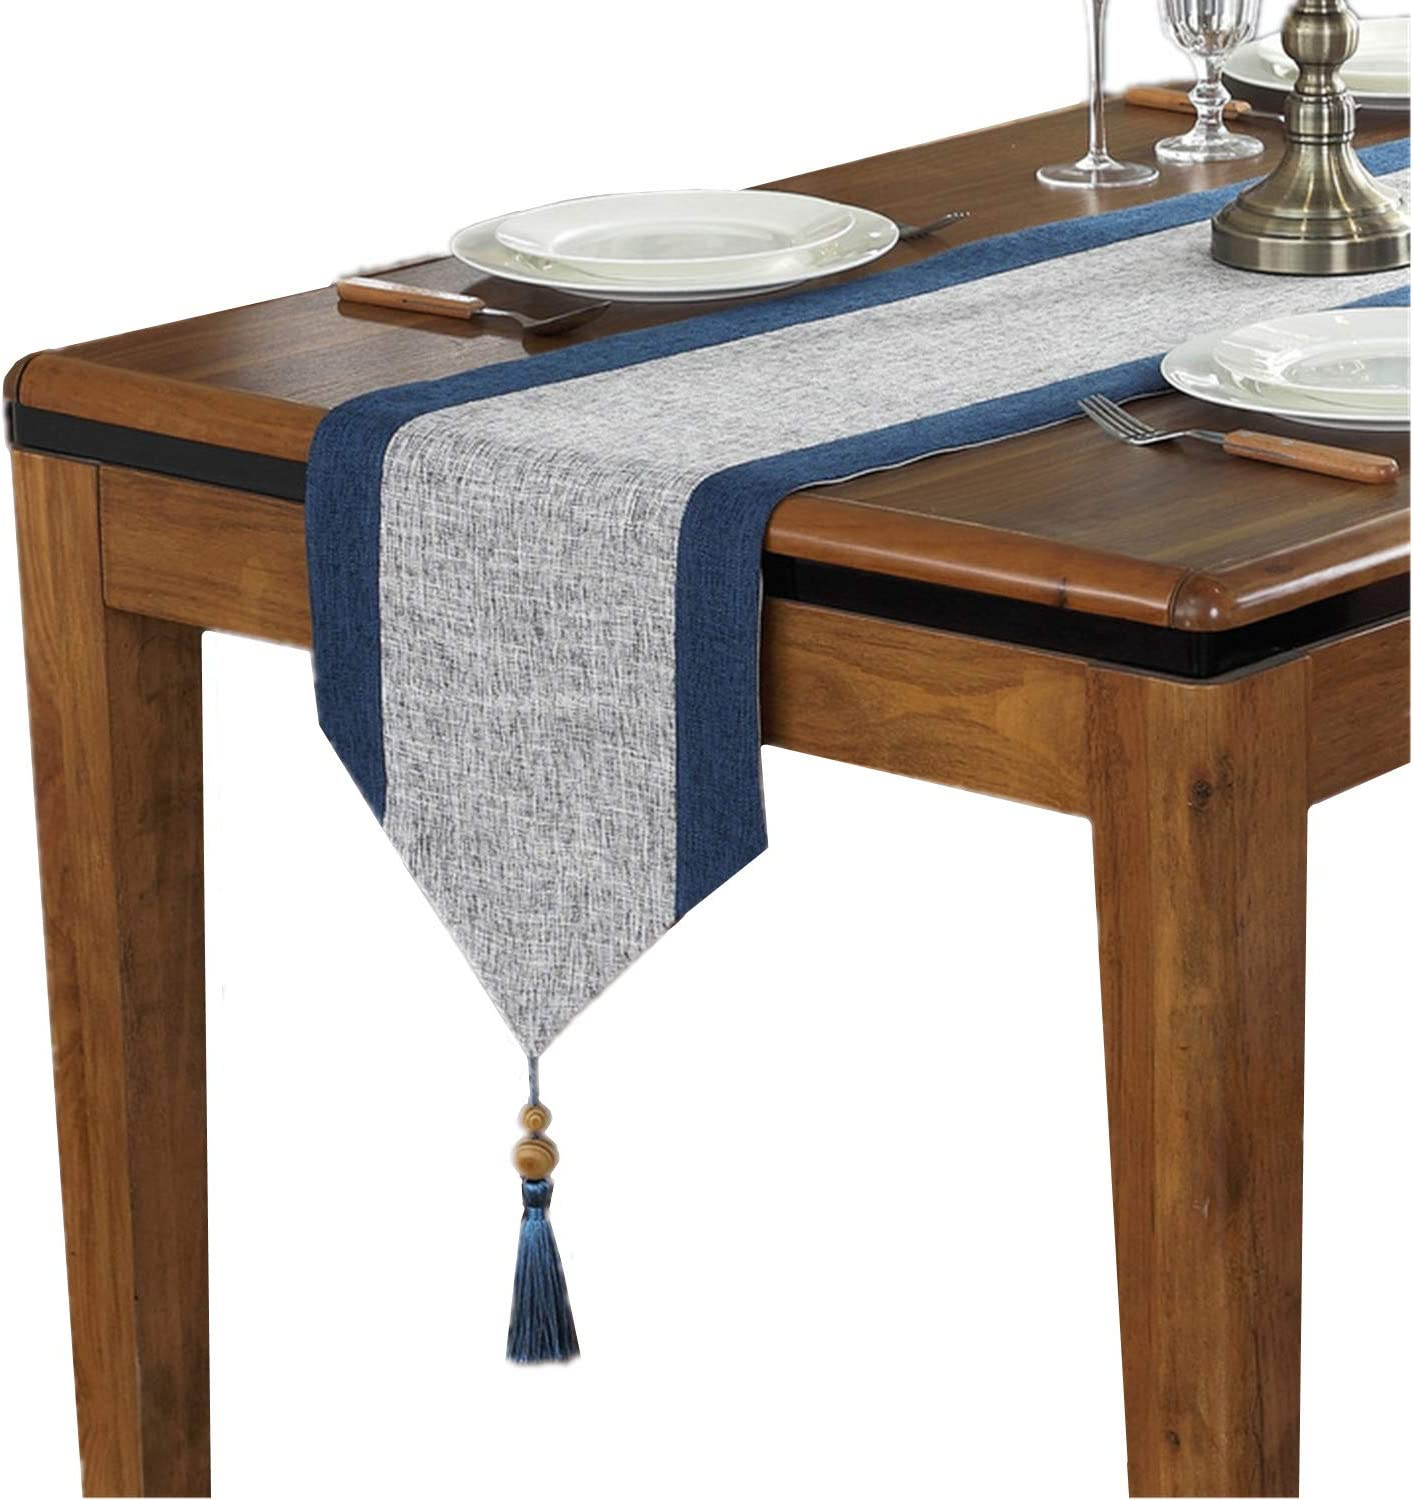 Cotton Linen Table Runner With Tassels For Dining Table Decoration Home Decor 13 X 82 Grey And Blue Home Kitchen